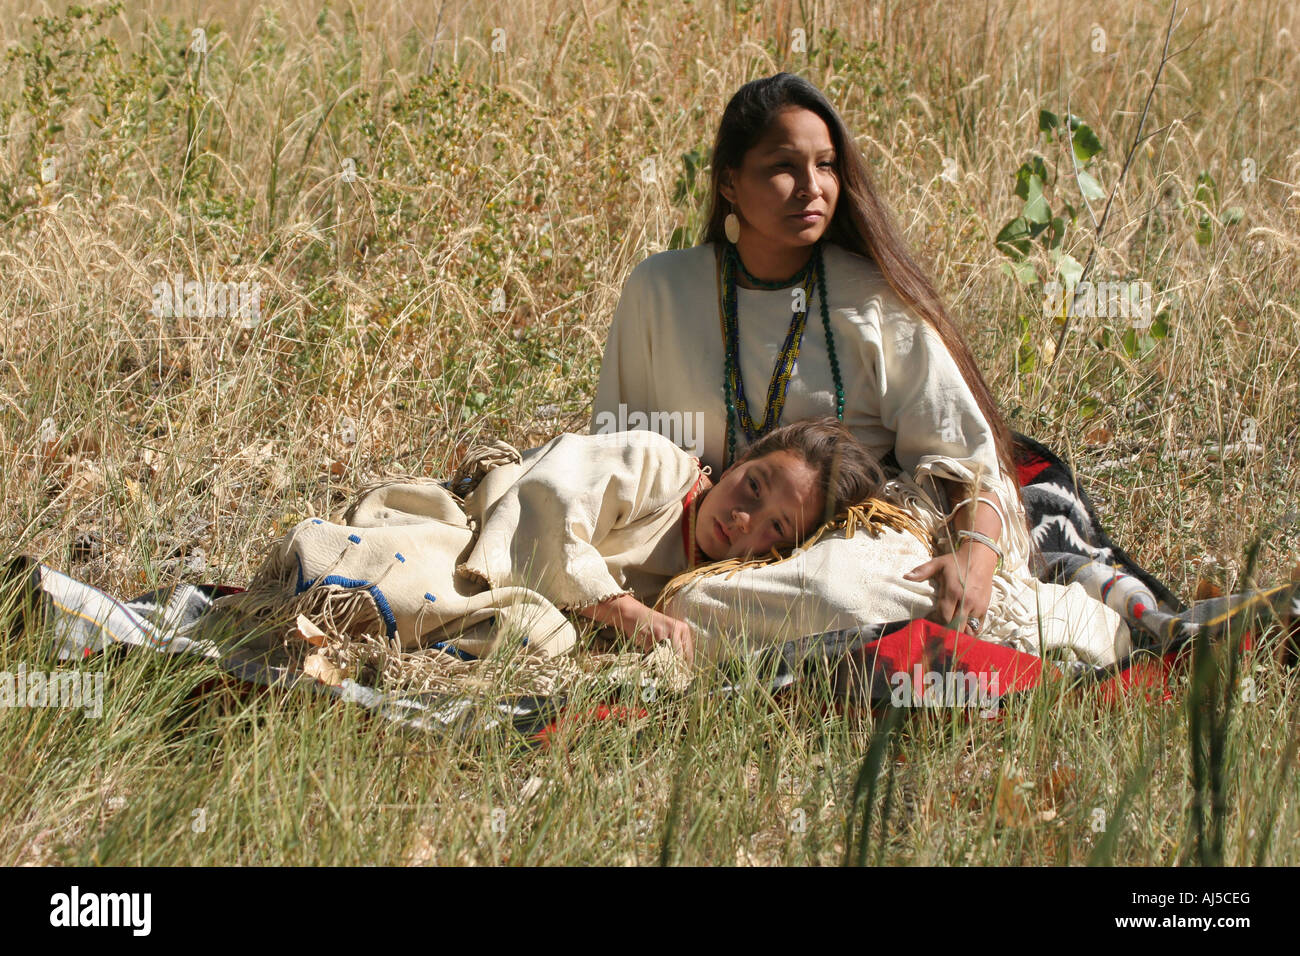 Native American Sioux Indian Women and child sitting on a blanket in the long grass - Stock Image